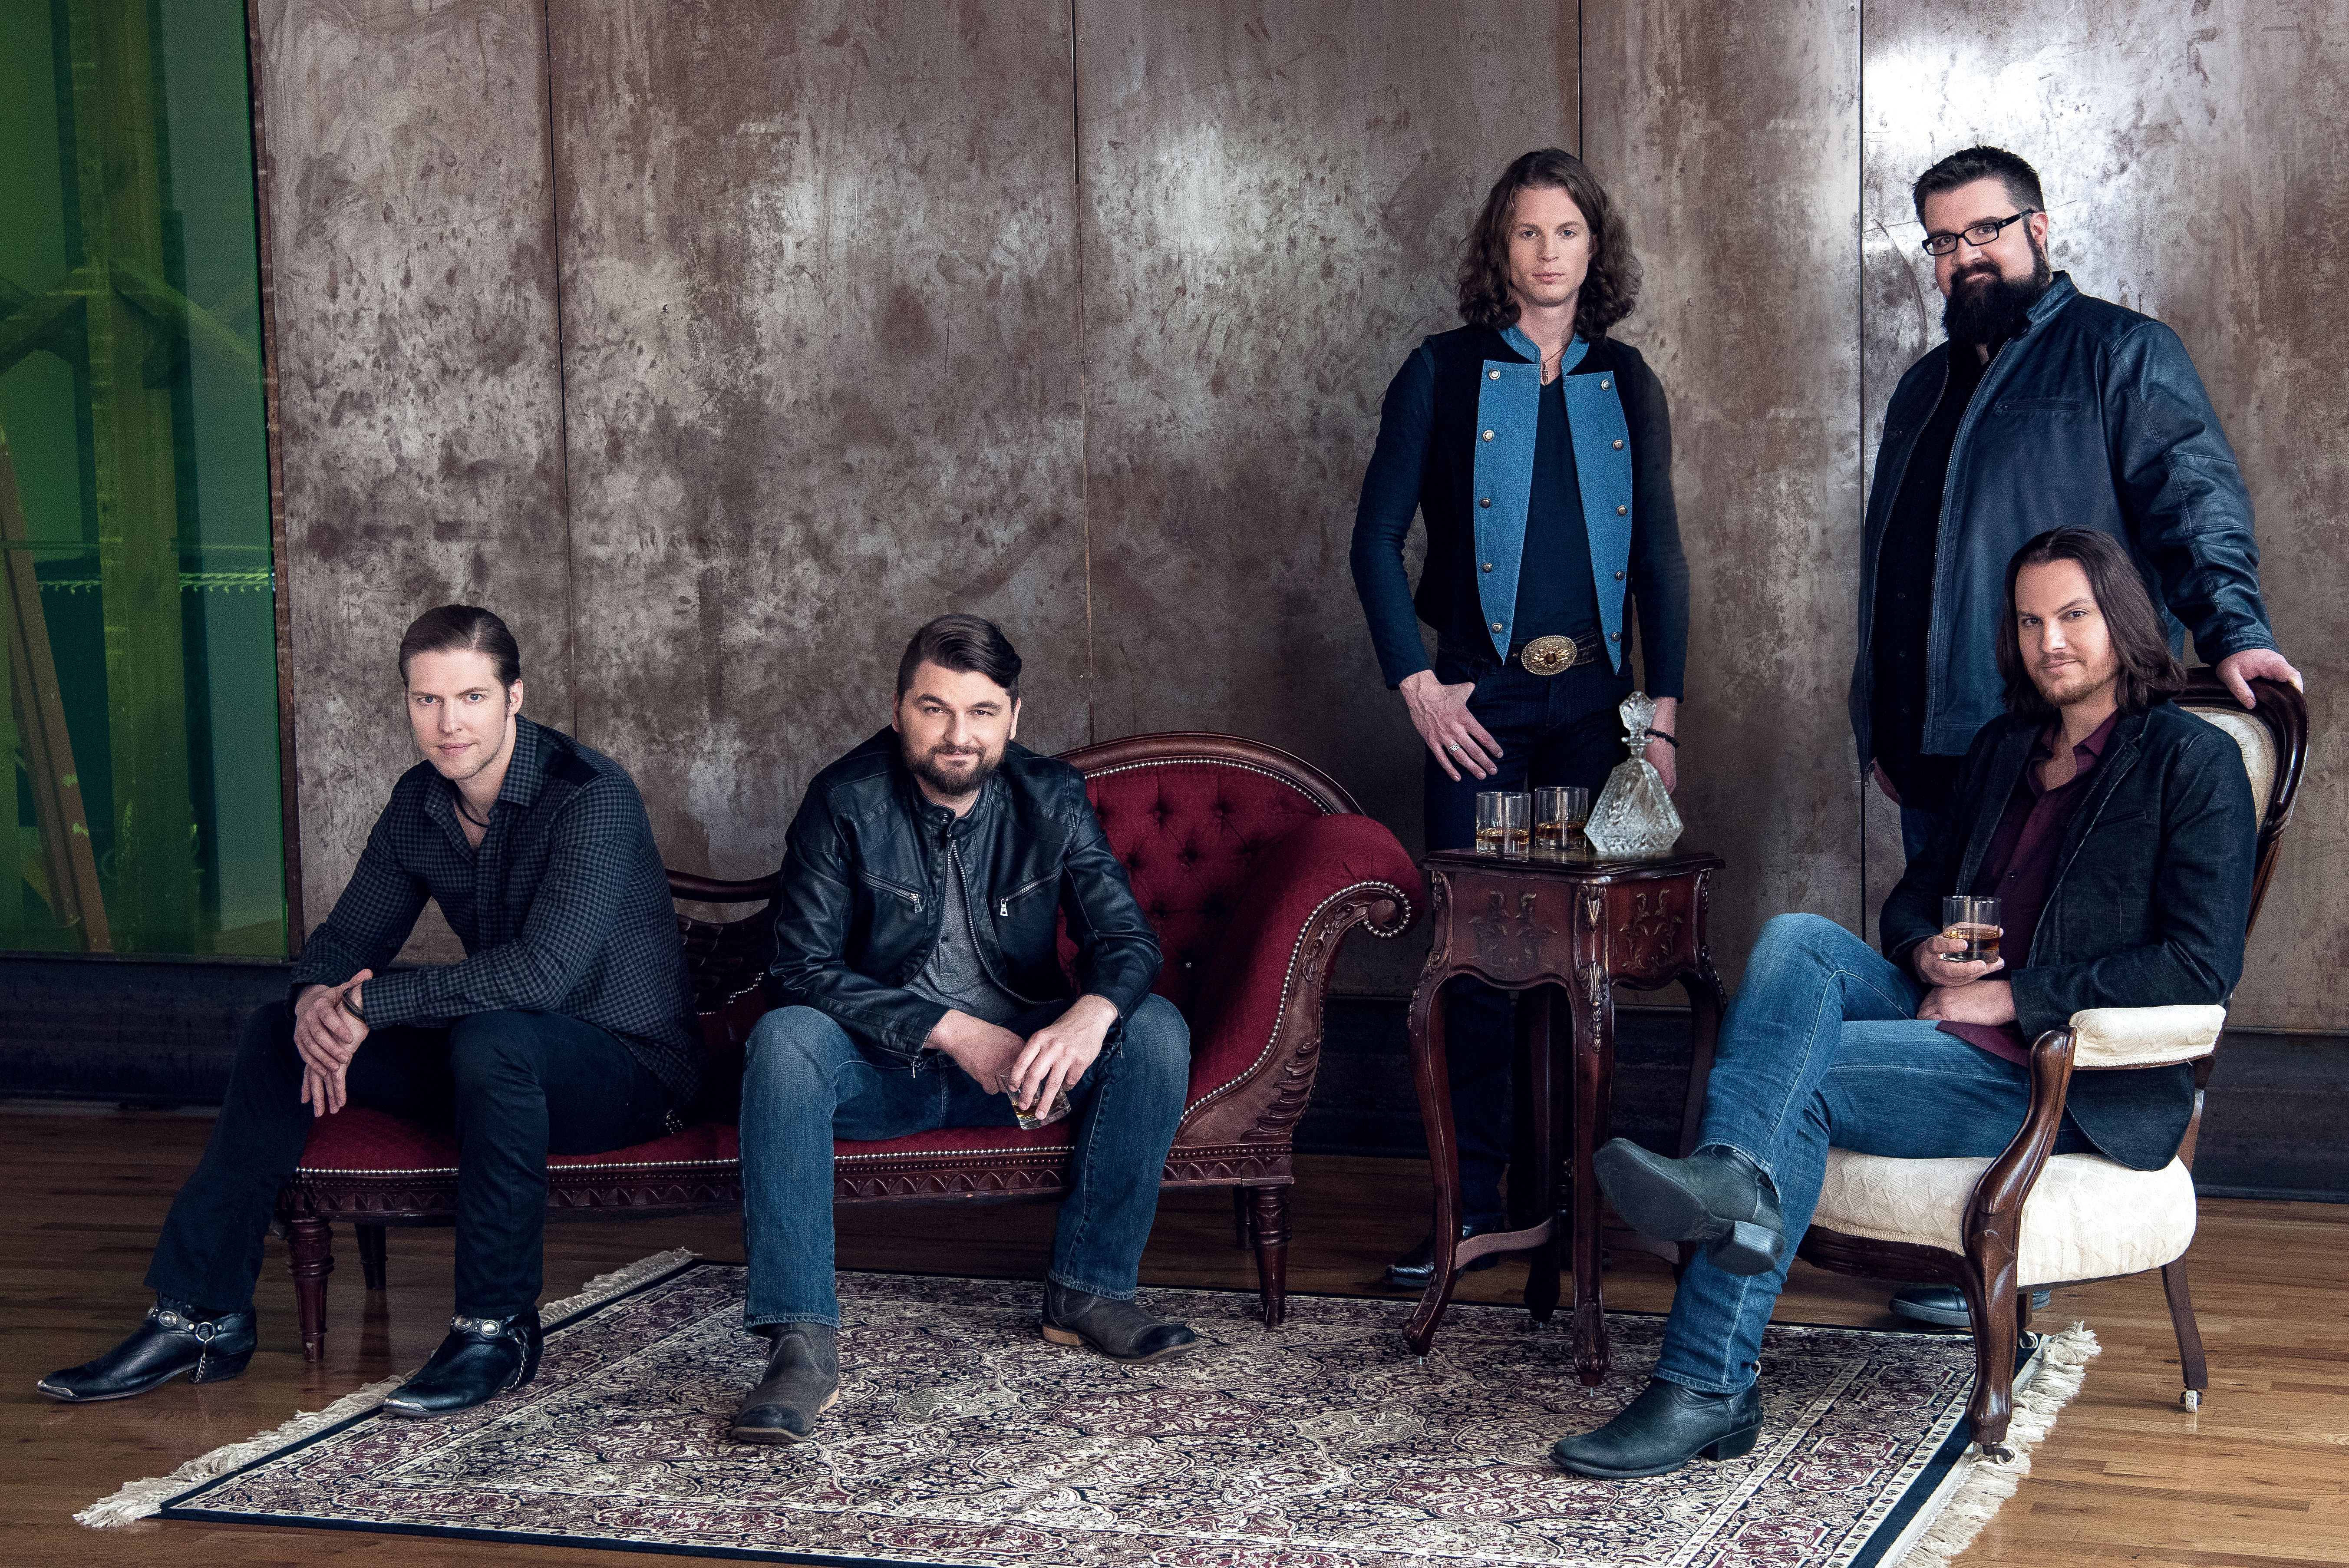 Exclusive Video Interview With Home Free: A Cappella Crooners Shaking Up Nashville